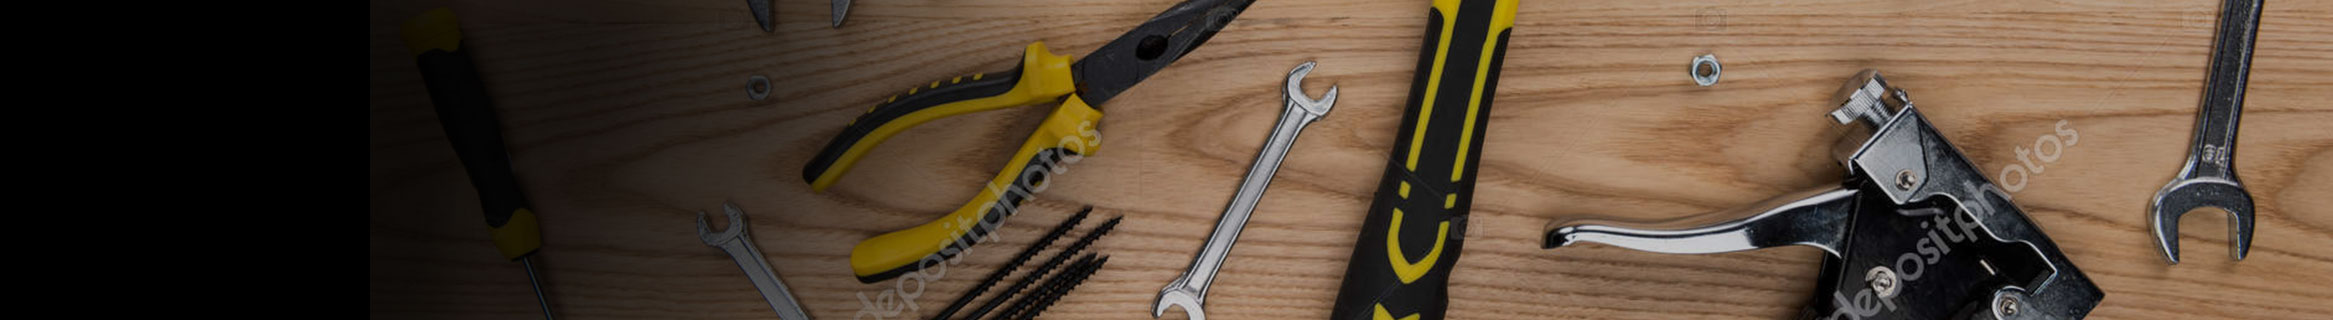 tools_banner